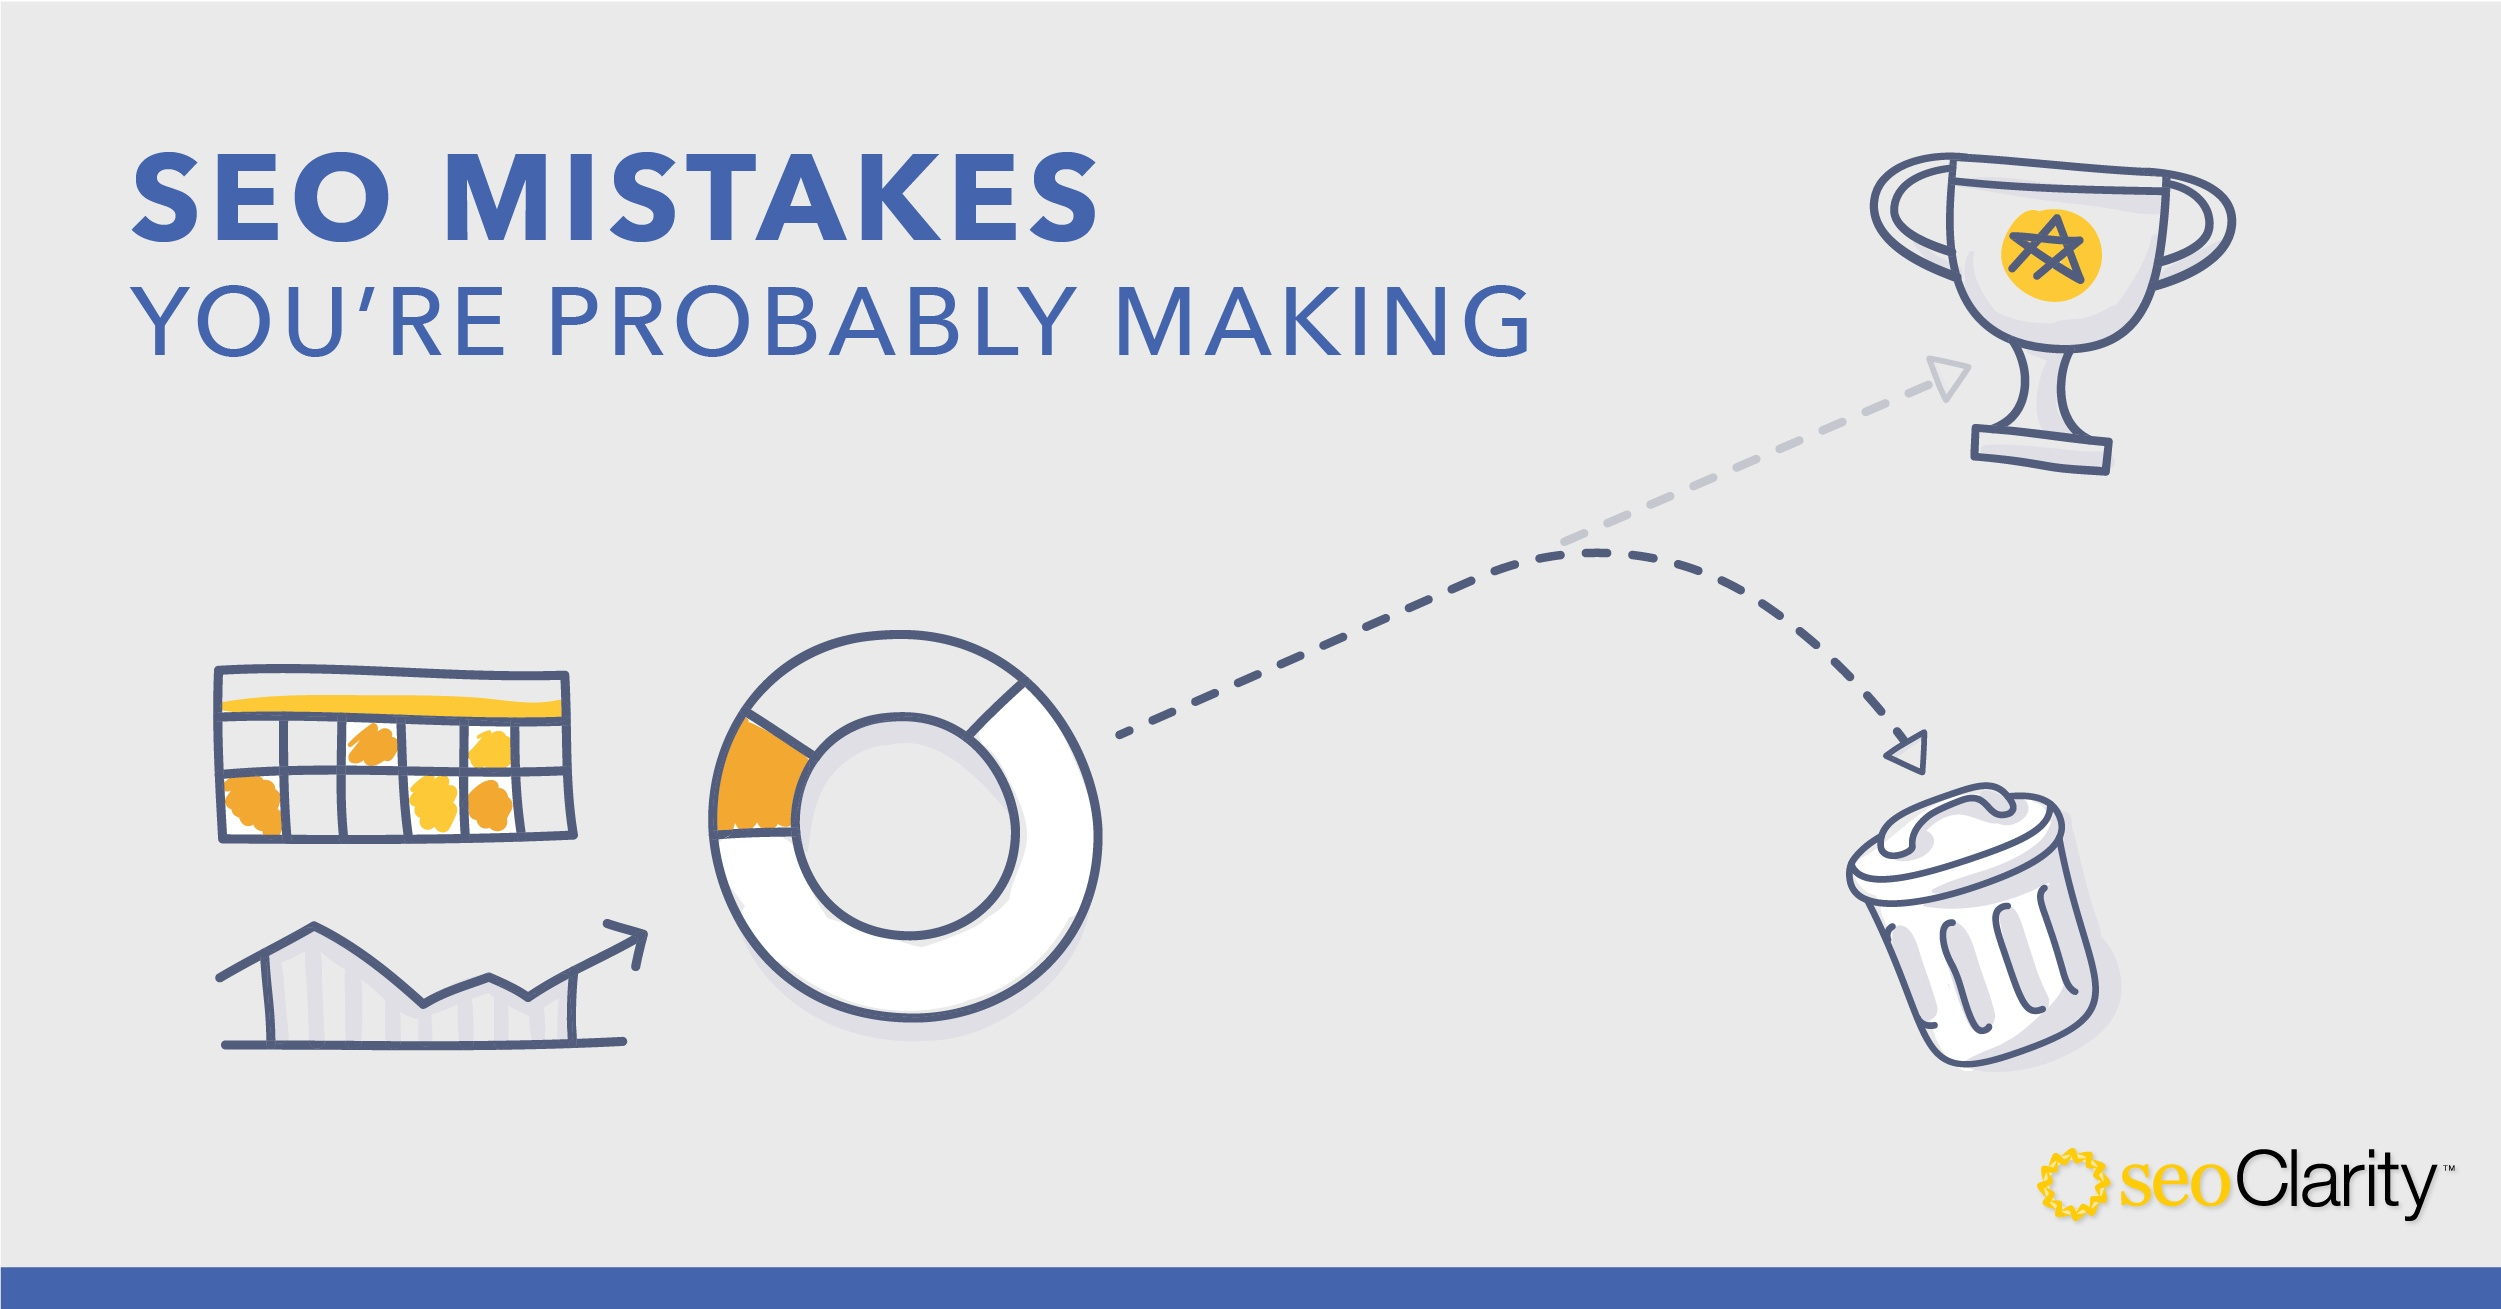 7 Enterprise SEO Mistakes That Will Hurt Your Business - Featured Image